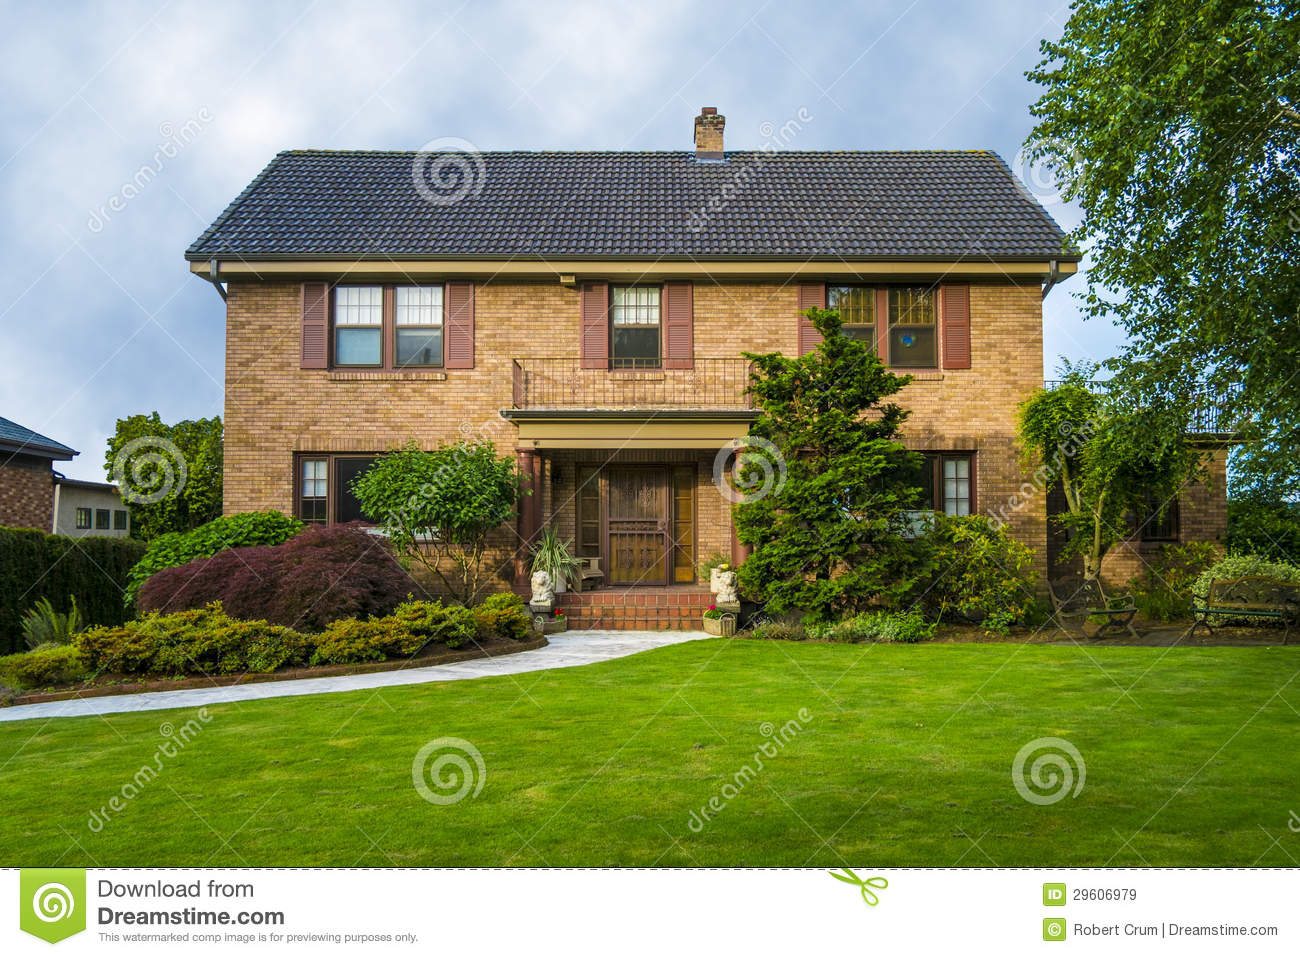 Classic Two Story Brick House Royalty Free Stock Images